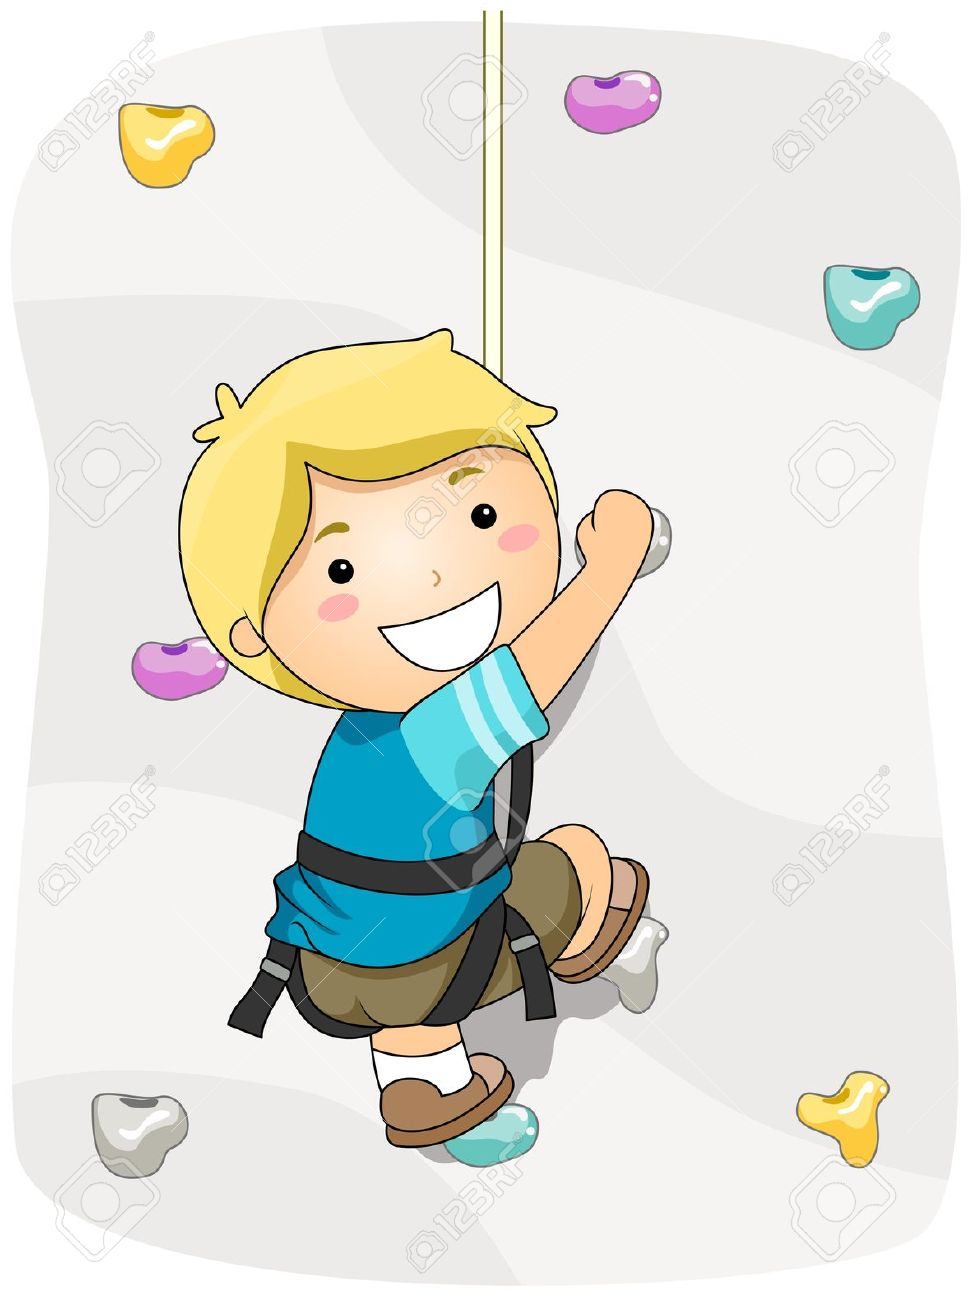 Boy Wall Climbing Stock Photo, Picture And Royalty Free Image.